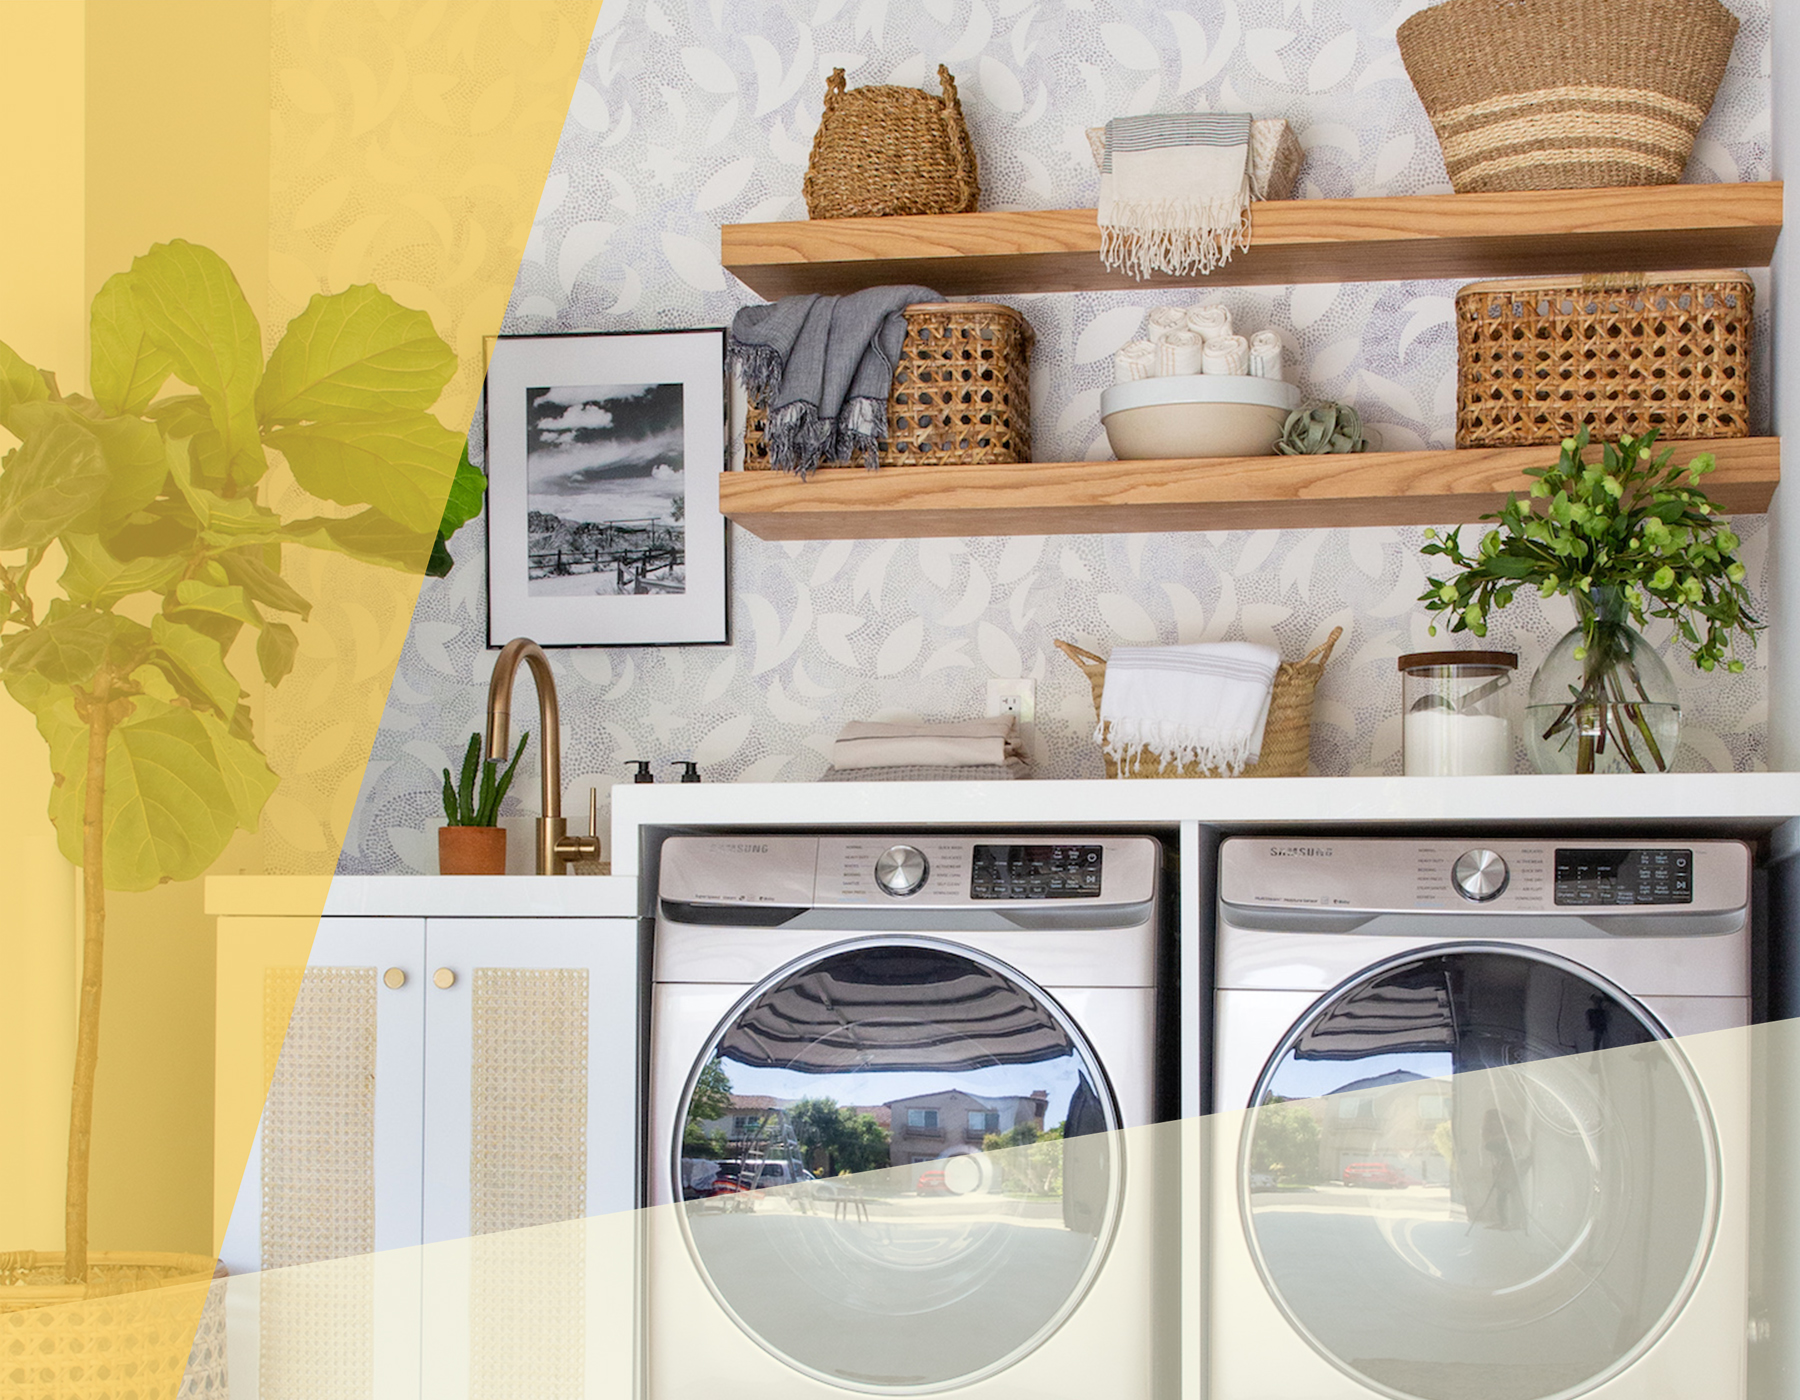 5 Design Ideas to Steal From a Gorgeous Garage-Turned-Laundry Room